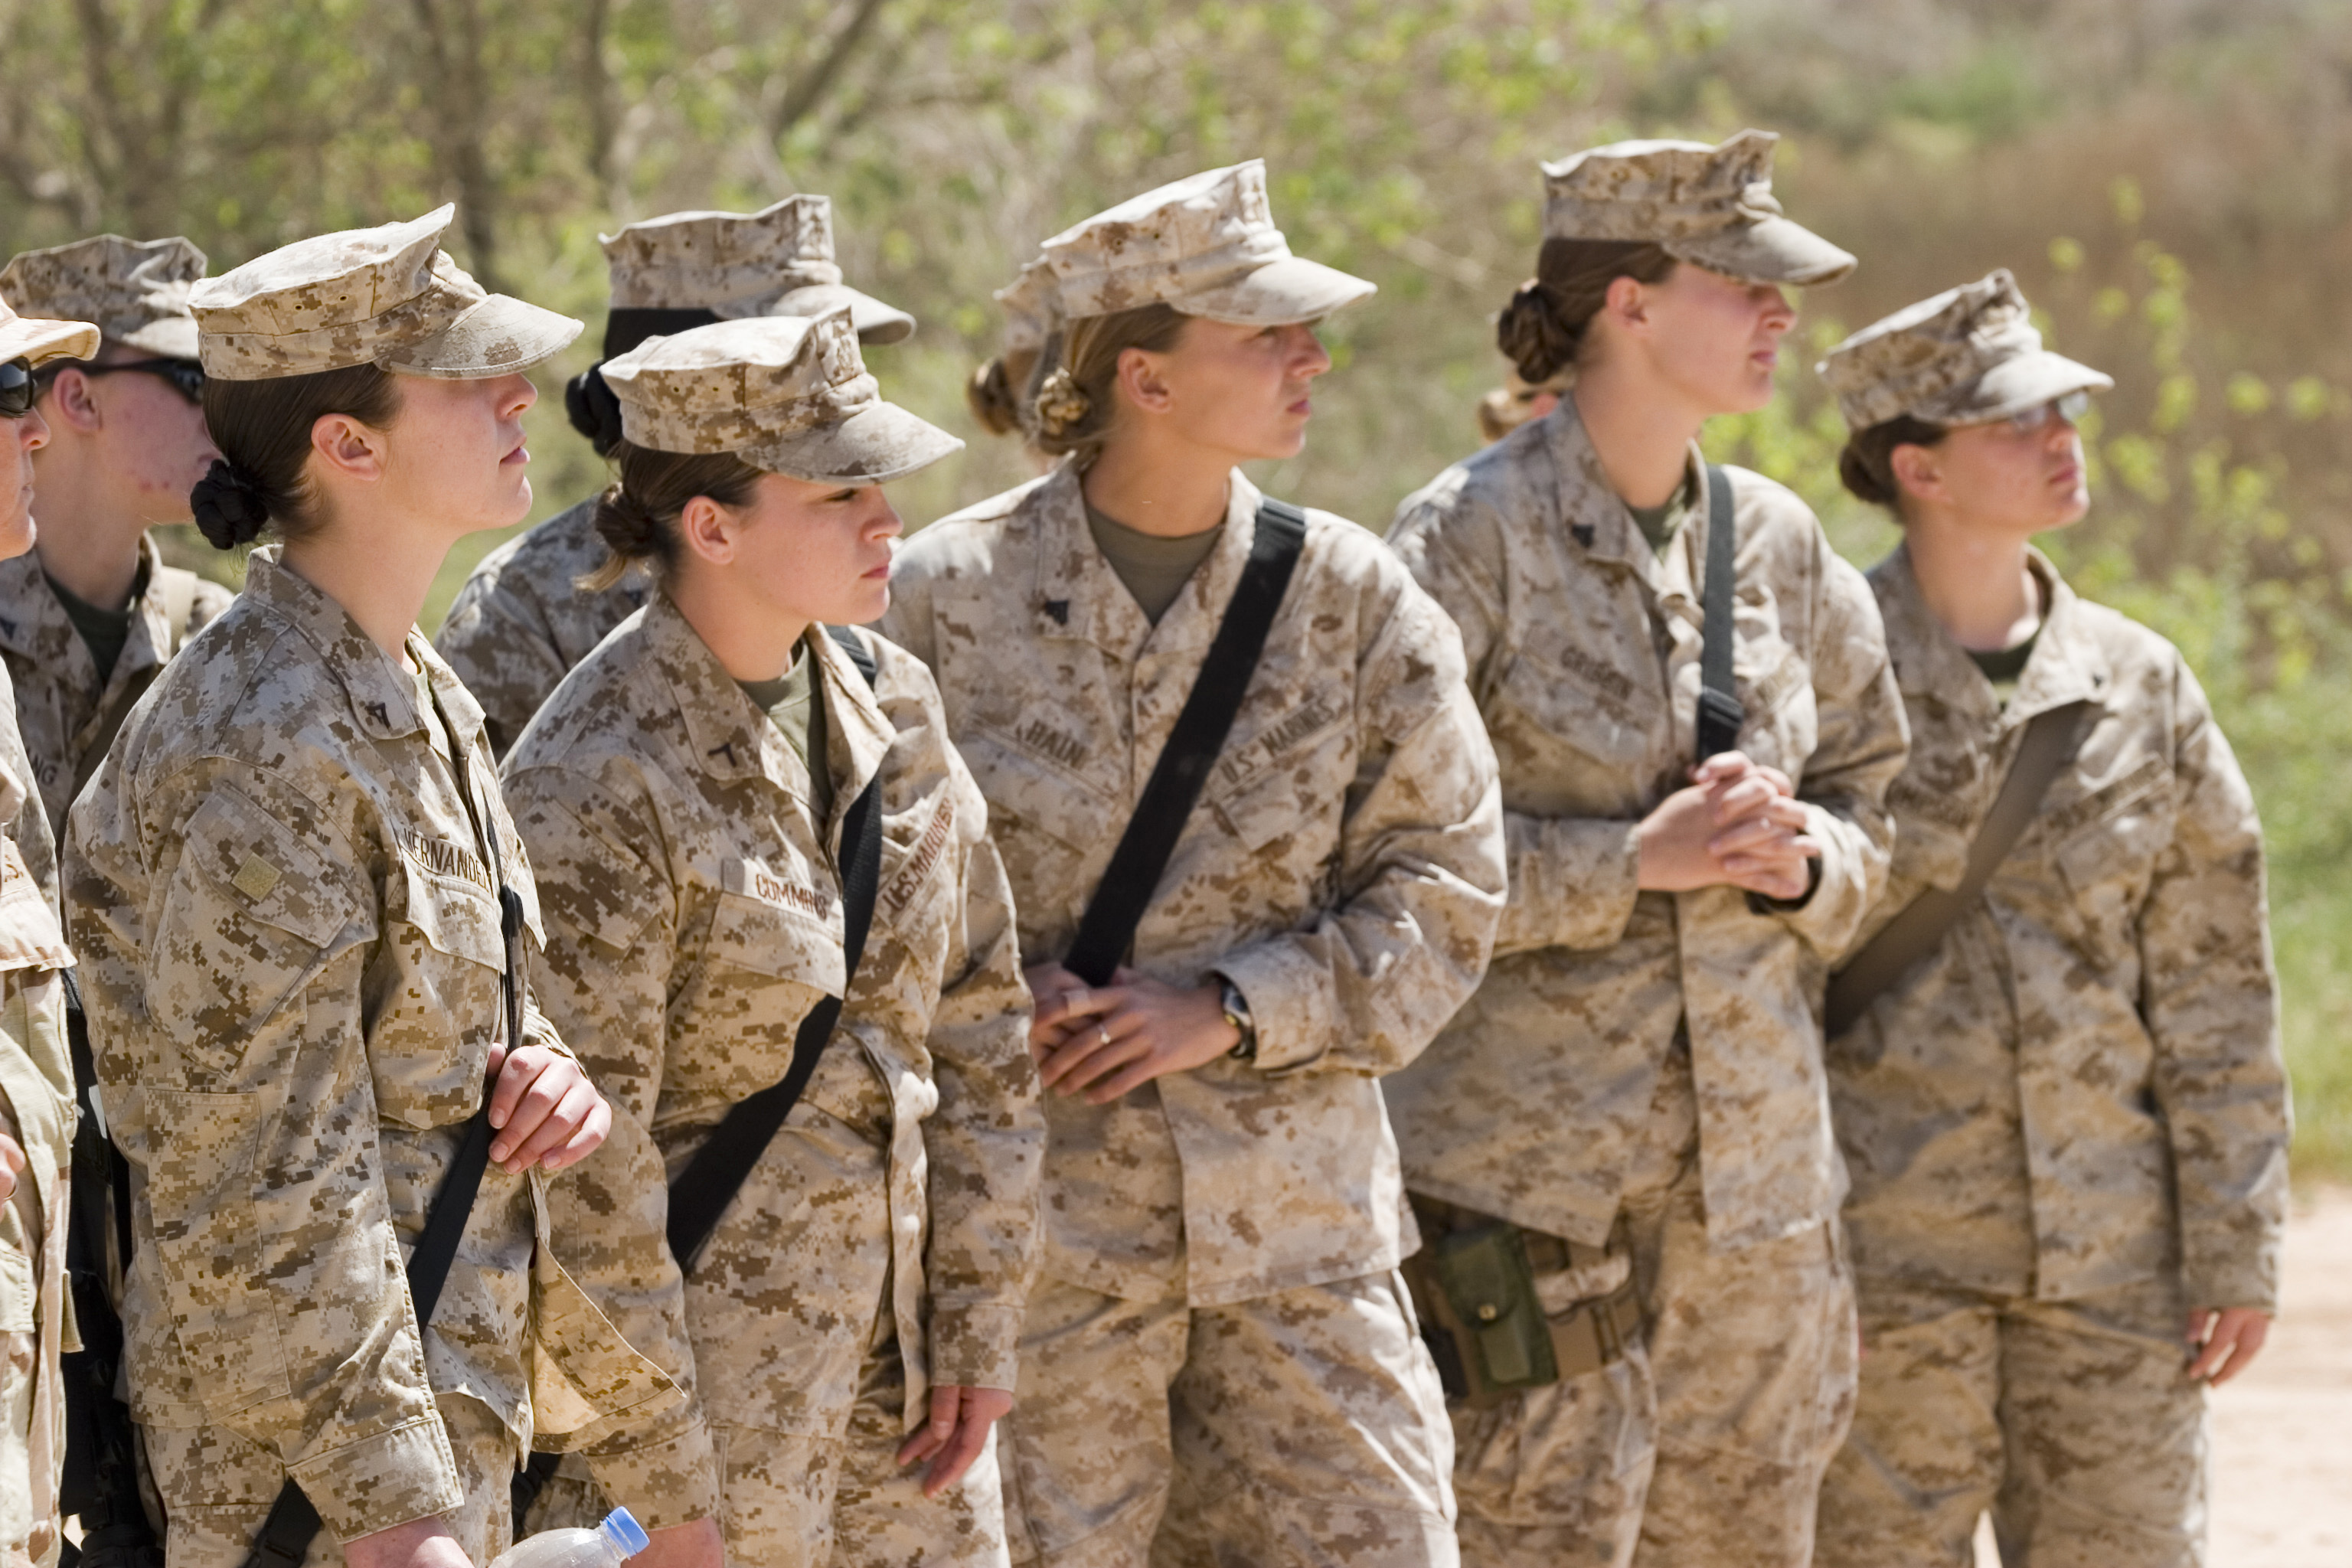 Women Prepare For Marine Combat Featured